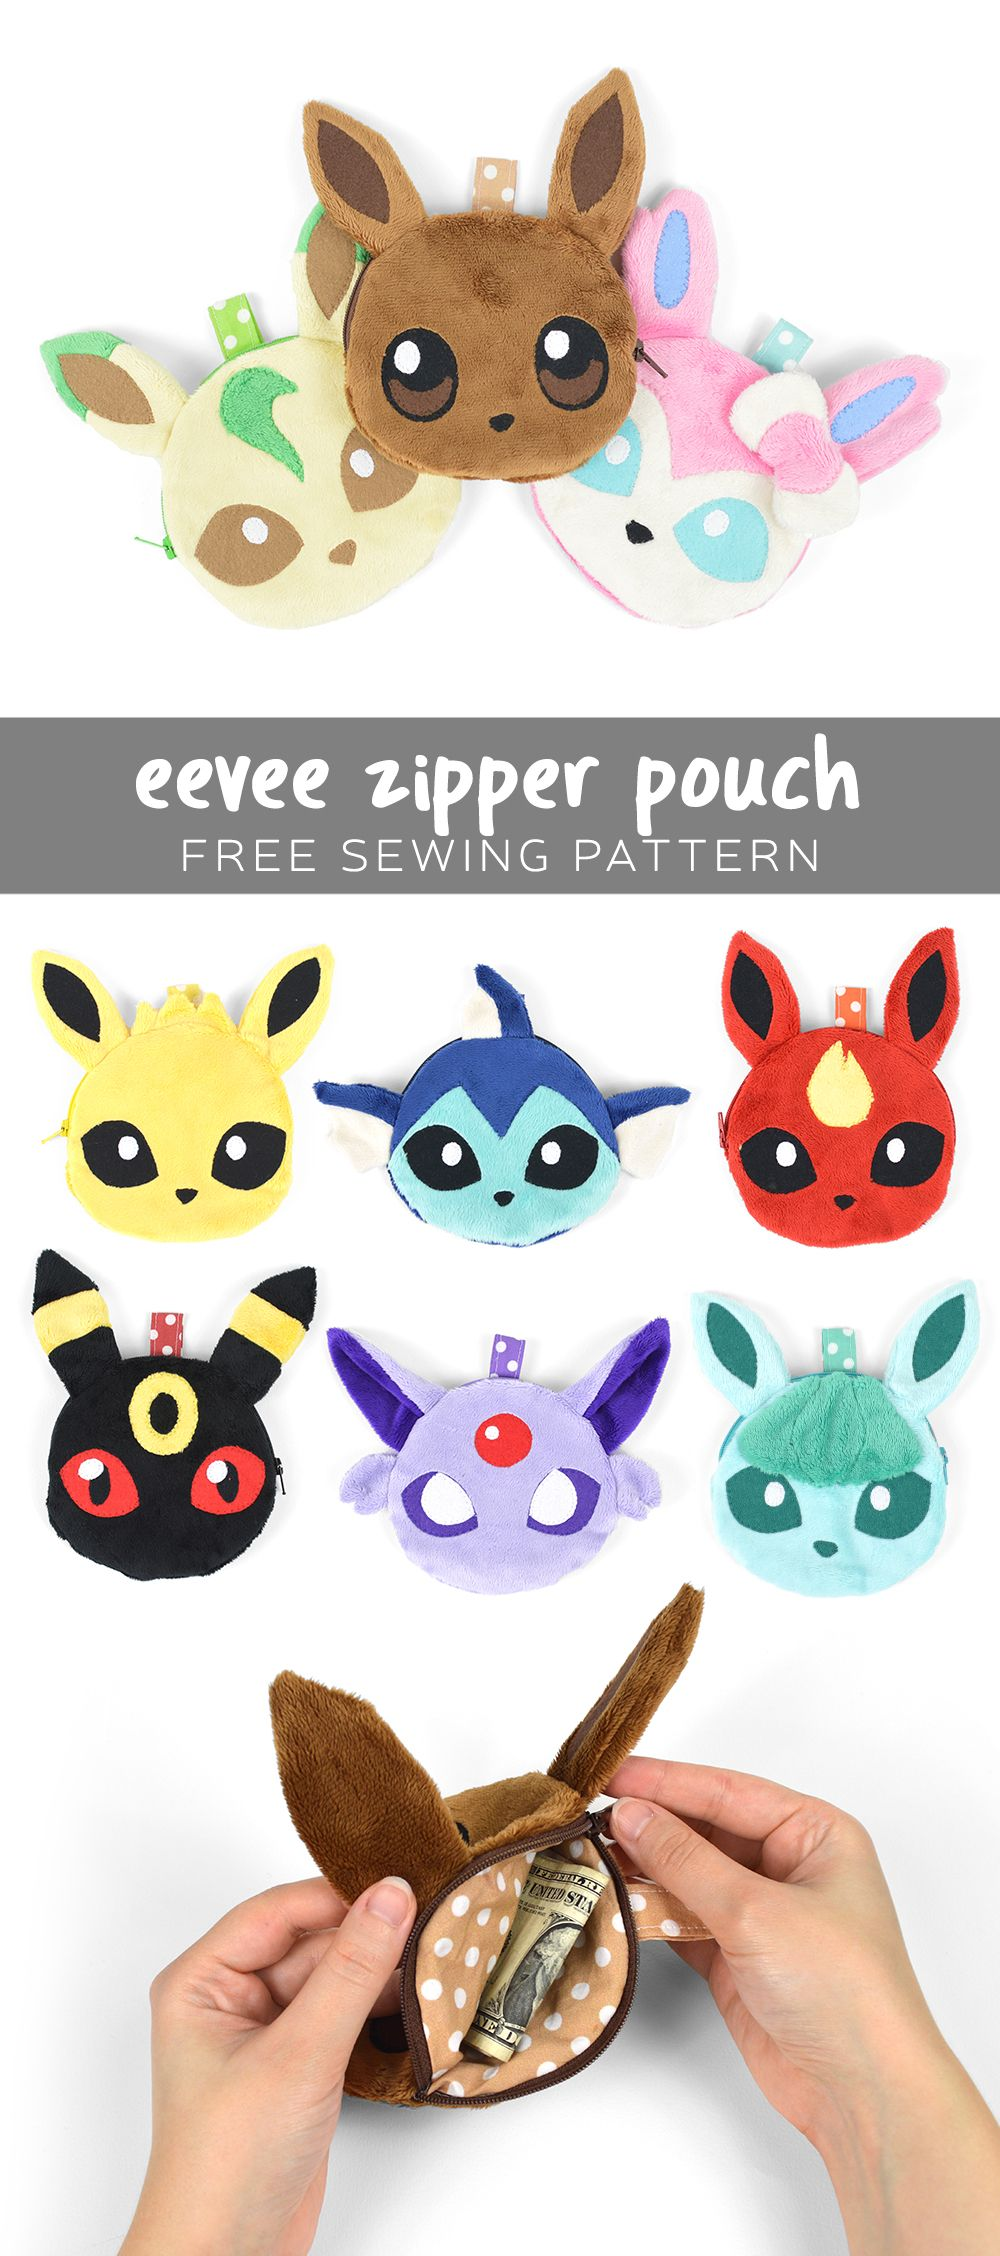 Free Pattern Friday! Eevee Zipper Pouch | Choly Knight | sewing ...